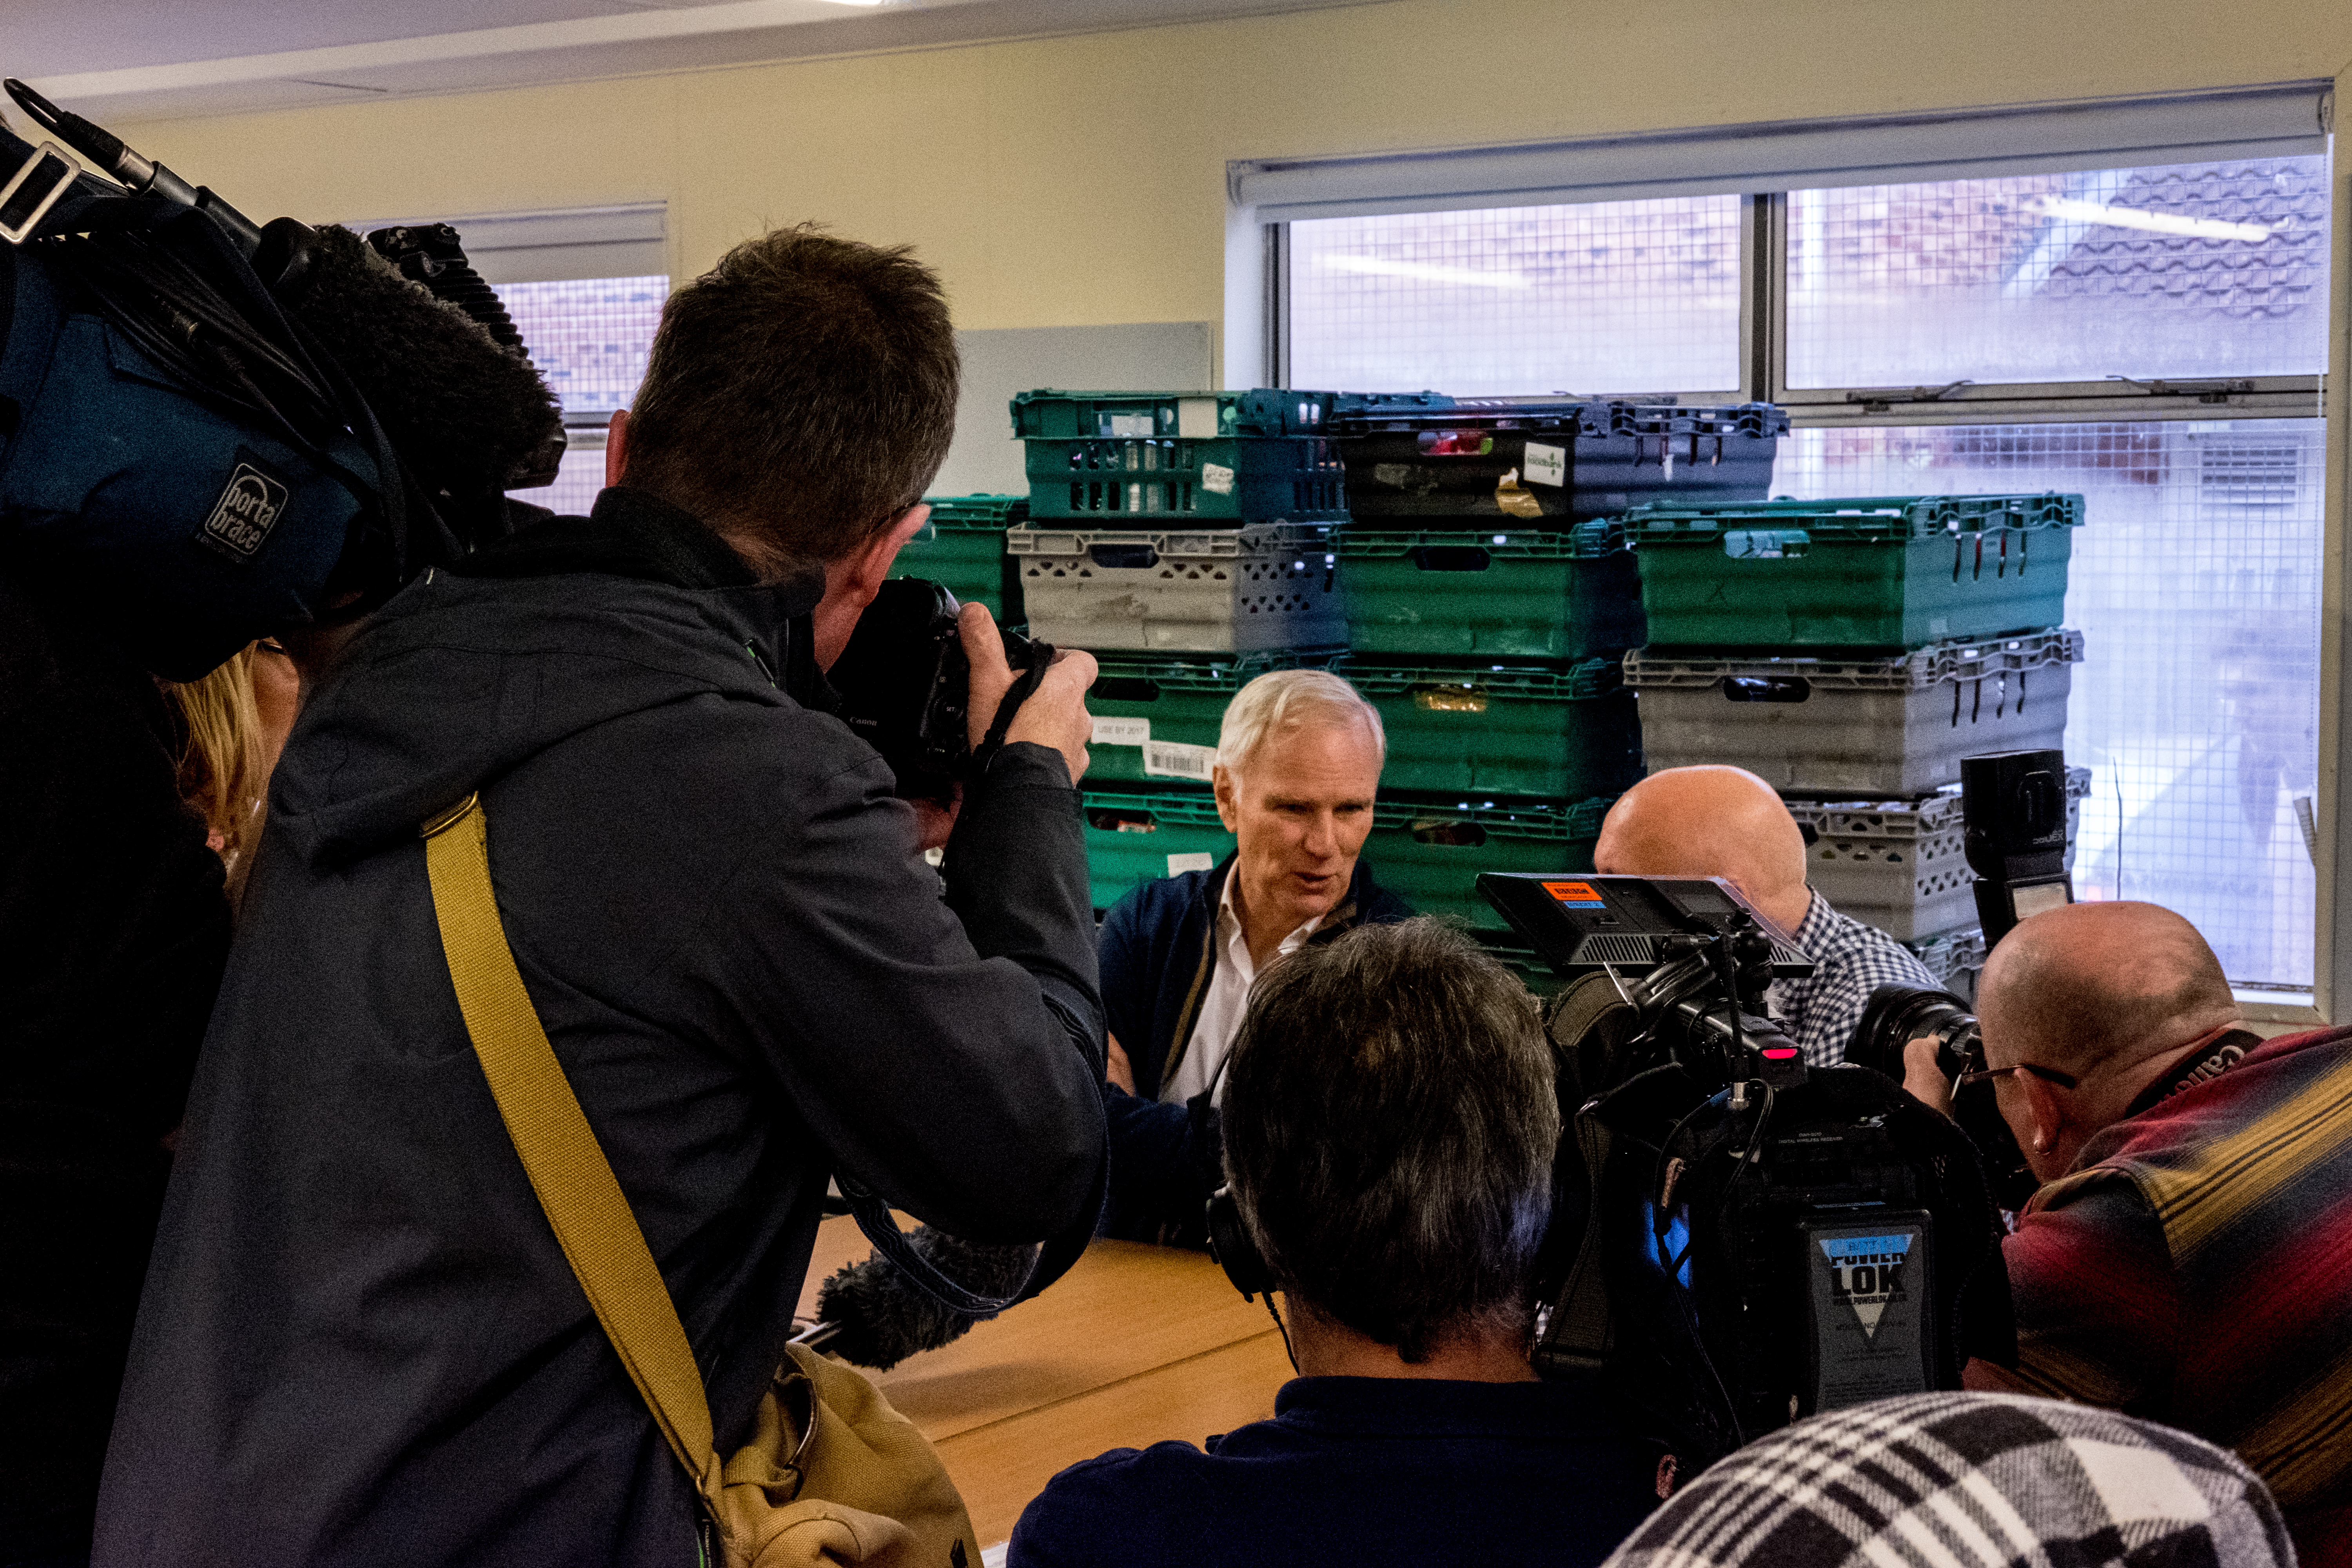 The Special Rapporteur visits a foodbank in Newcastle - C Bassam Khawaja 2018